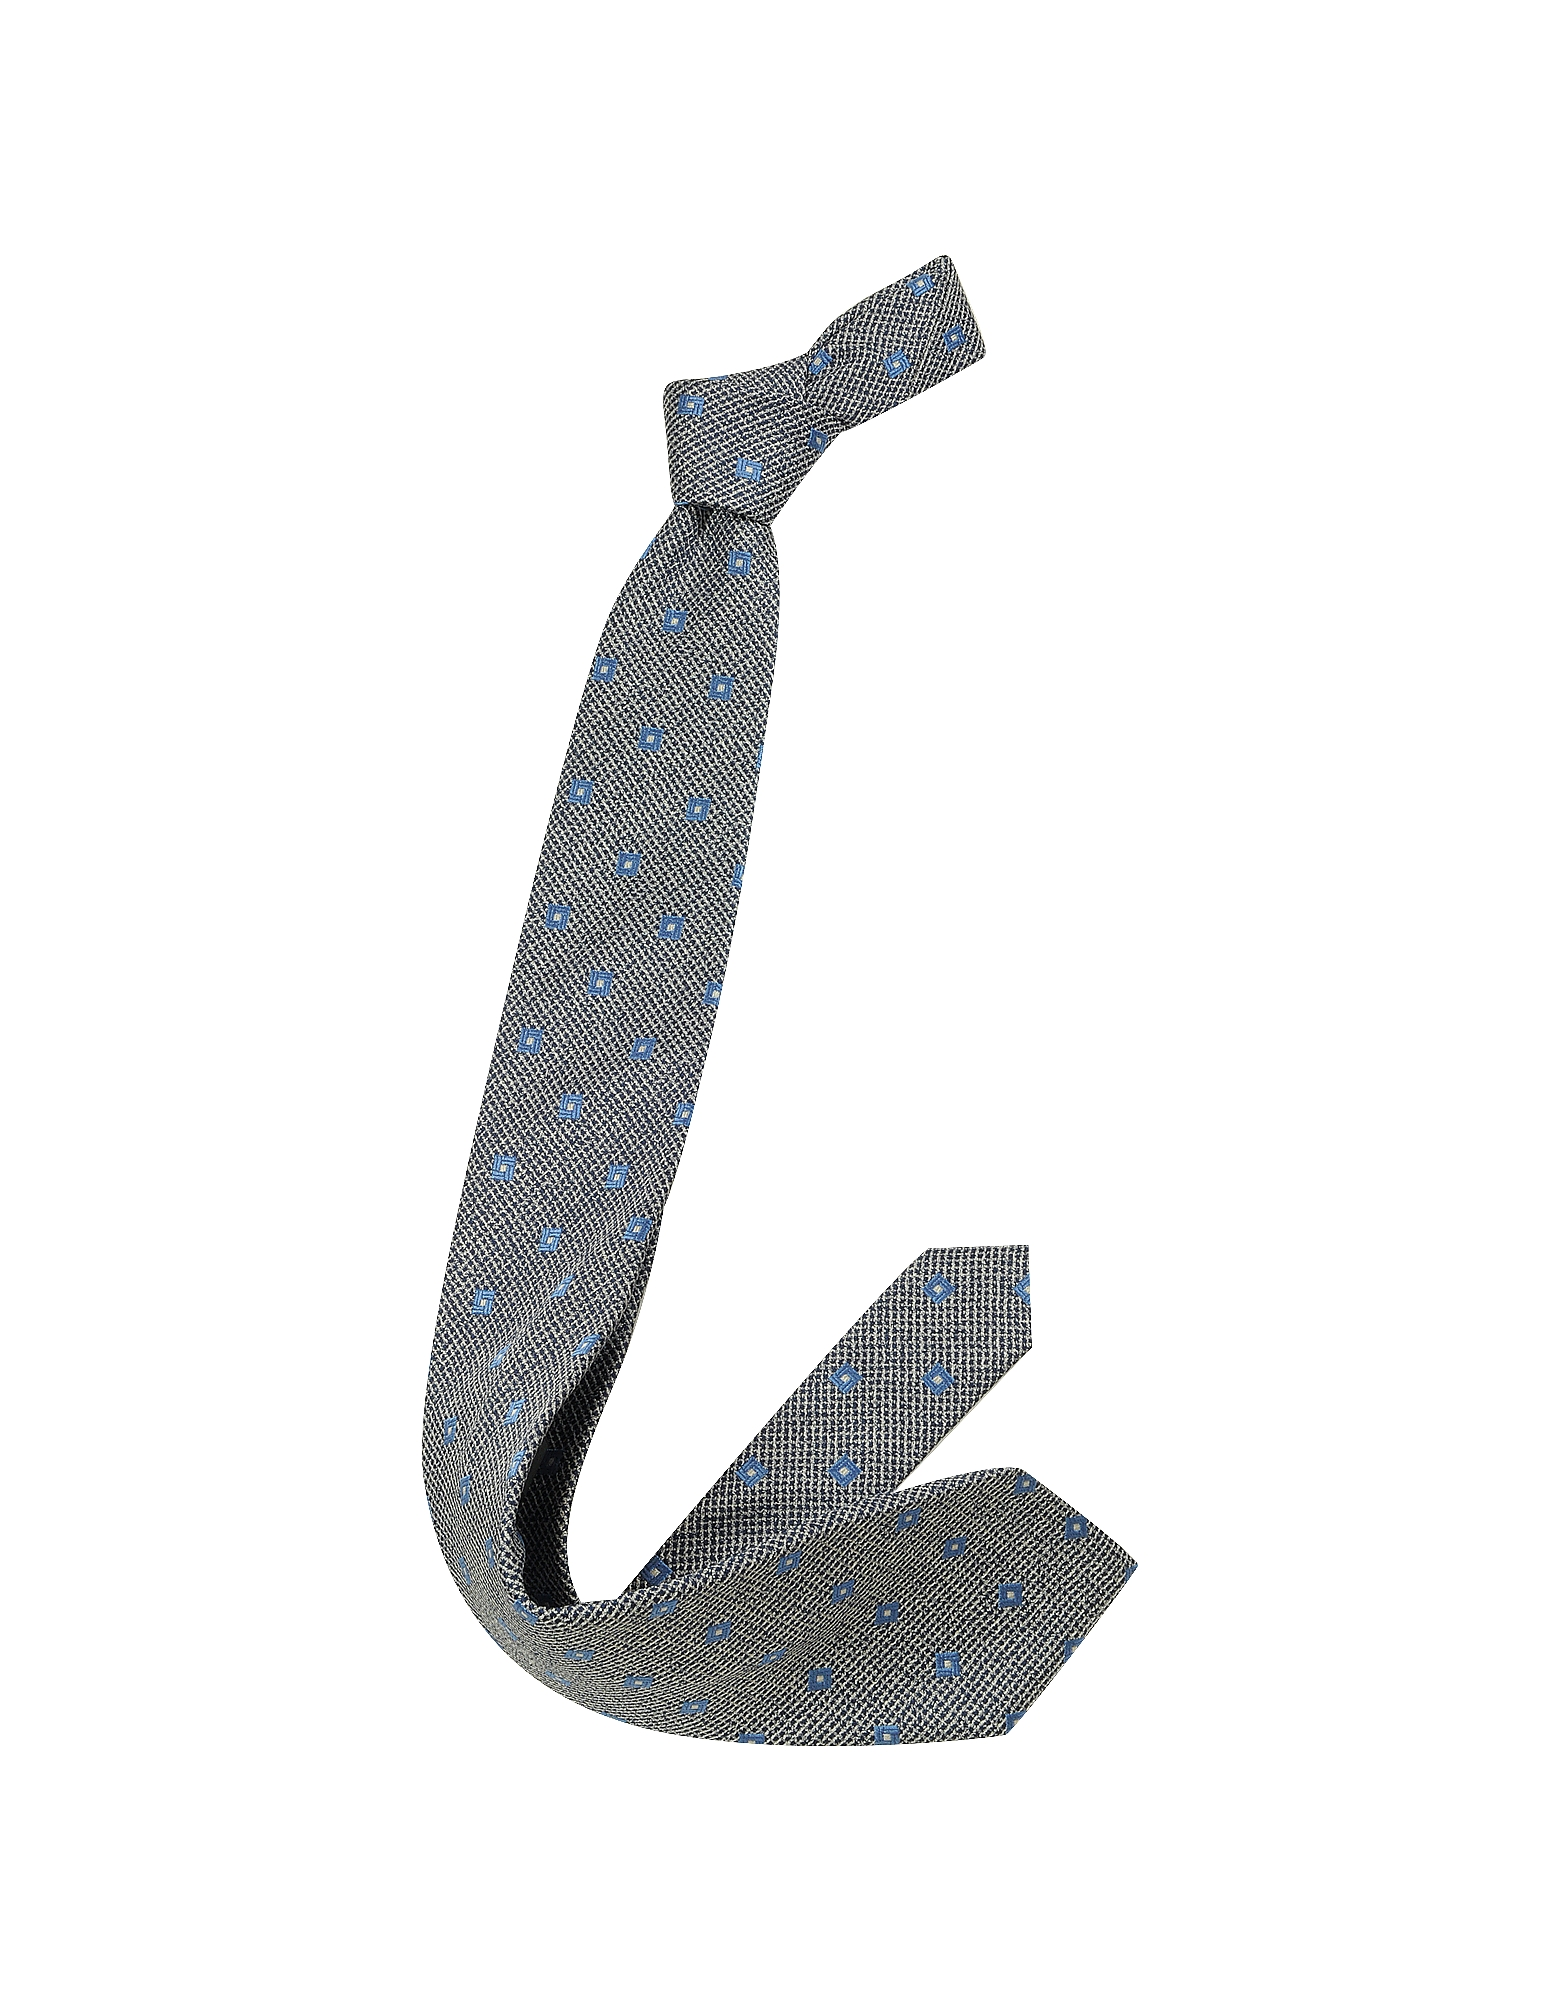 Navy Blue & White Geometric Patterned Woven Silk Tie от Forzieri.com INT